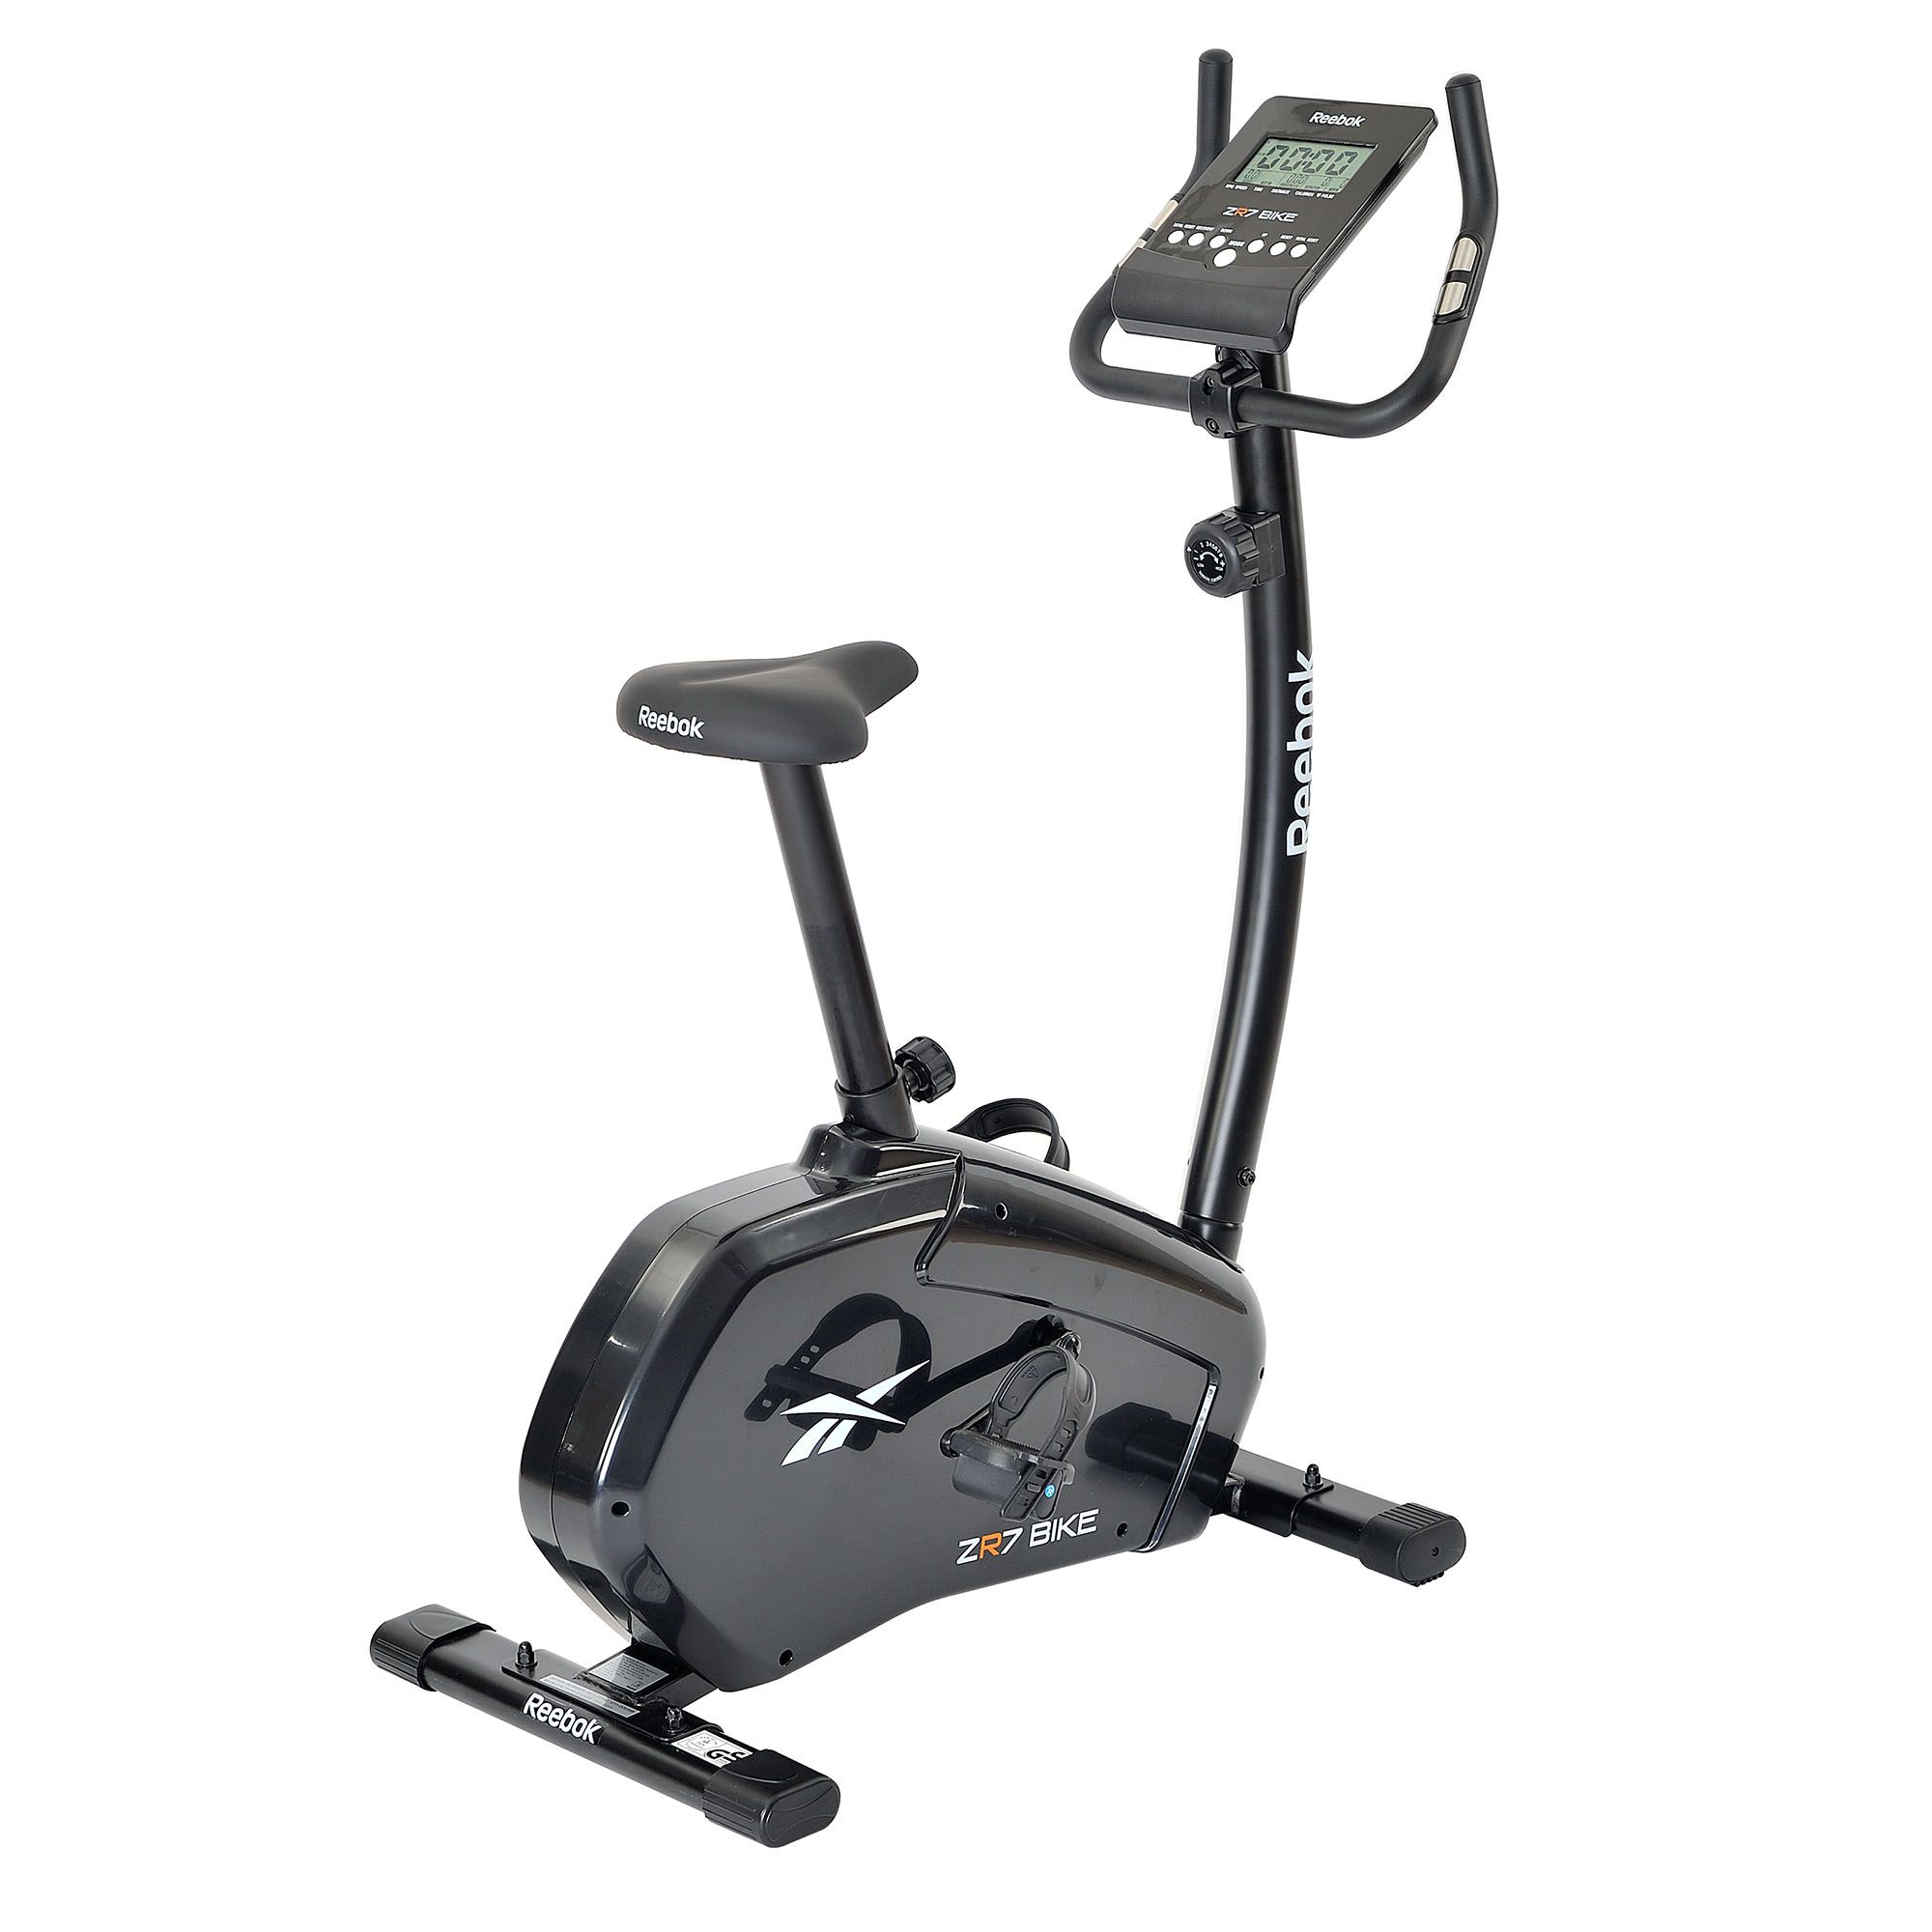 http://www.toughtrain.com/wp-content/uploads/2013/06/Exercise-Bike.jpg